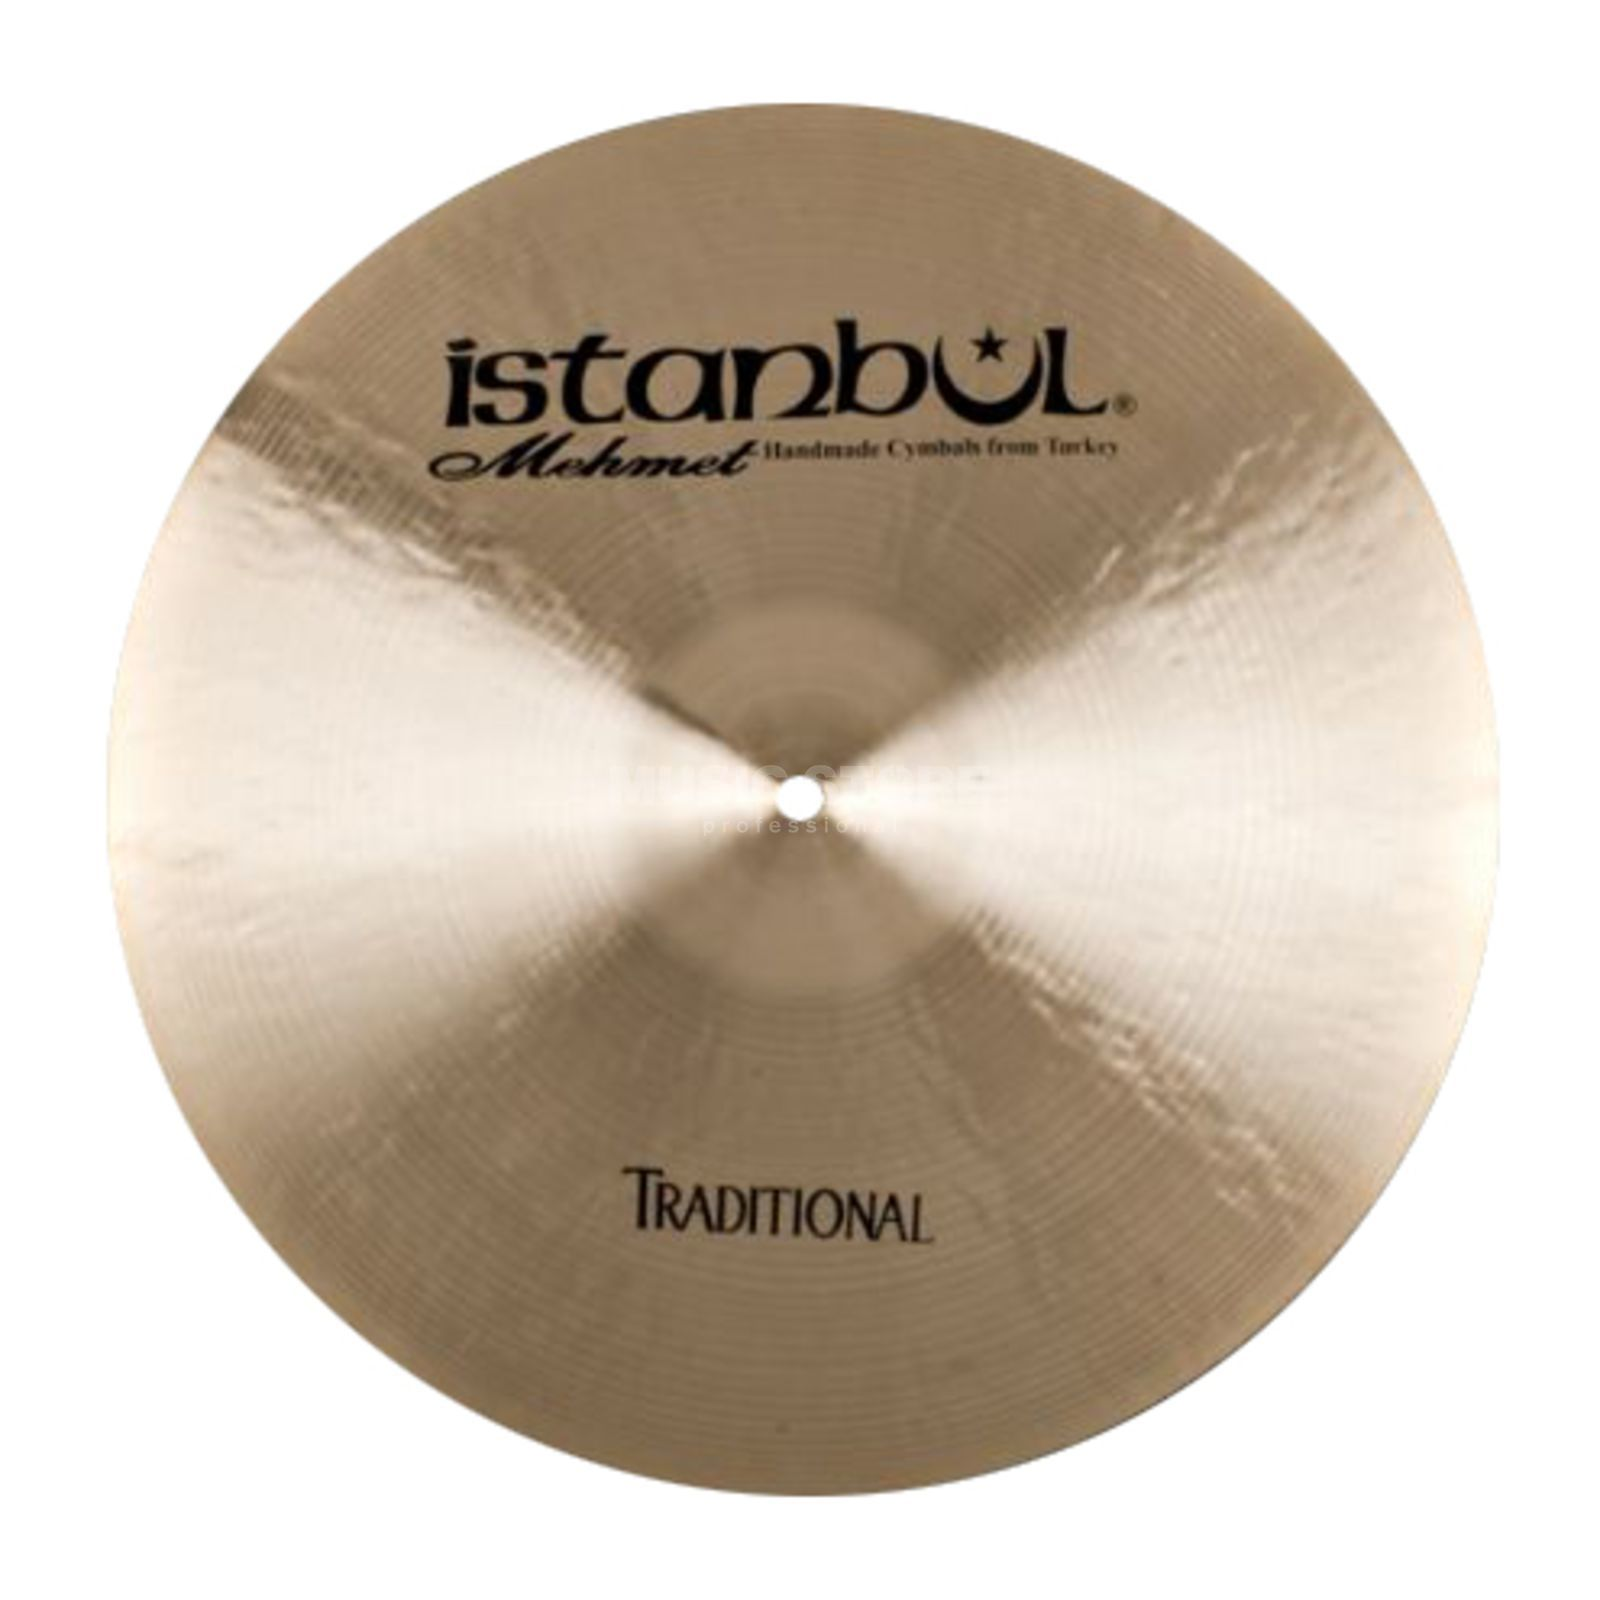 "Istanbul Traditional Heavy Crash 15"", CVY15 Produktbild"